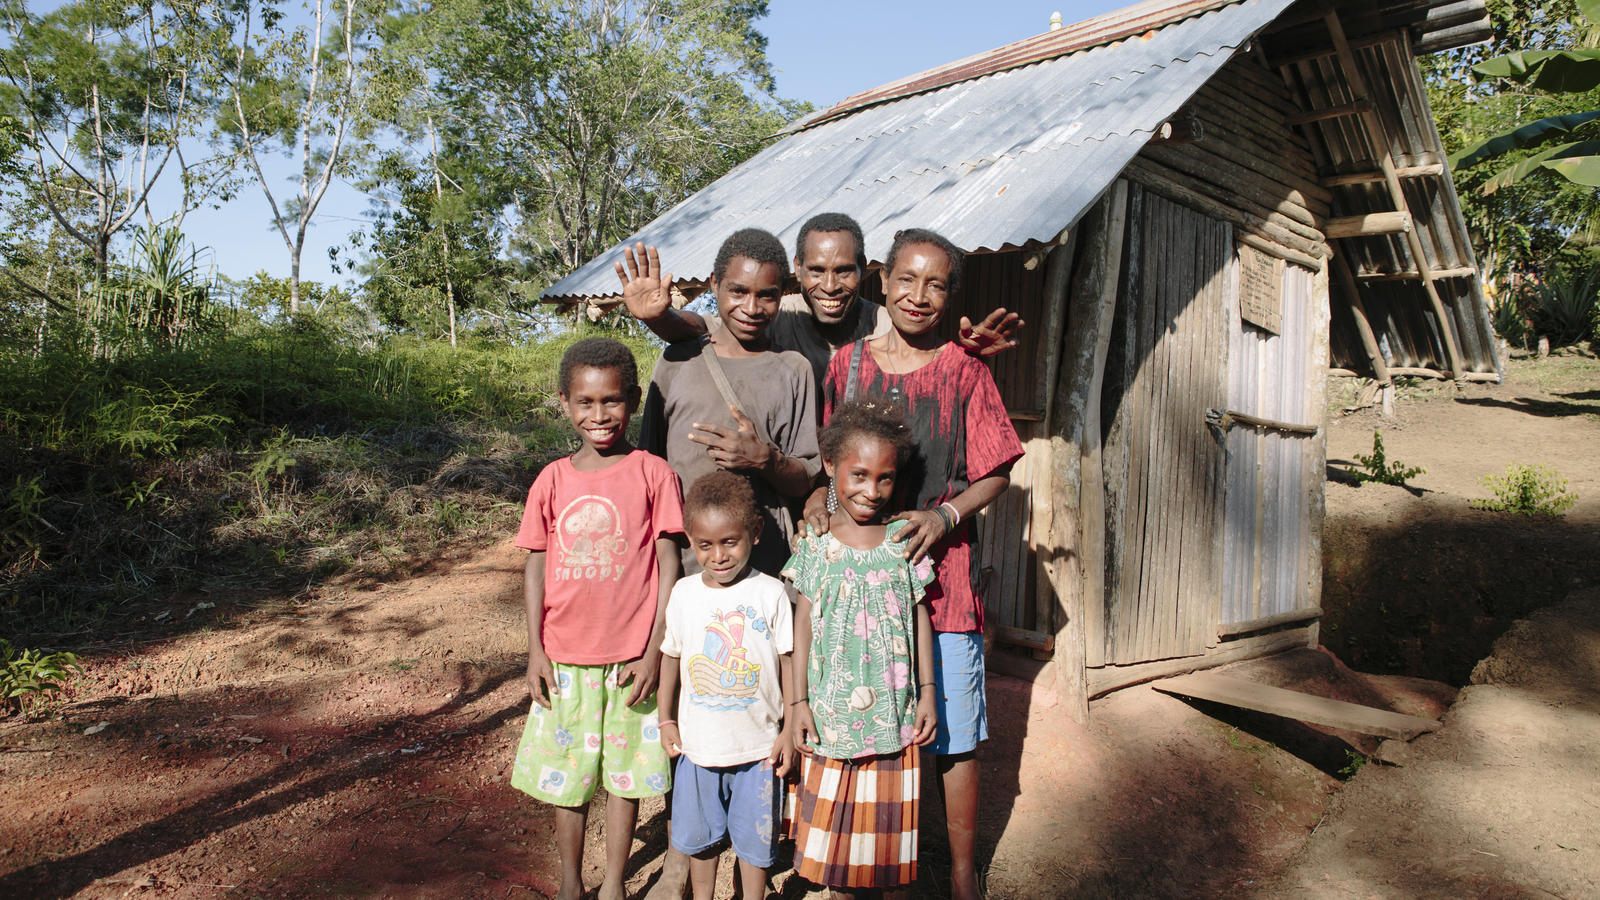 Andrew Kaiwa and his family stand in front of their new toilet in Mundangai village, Papua New Guinea.